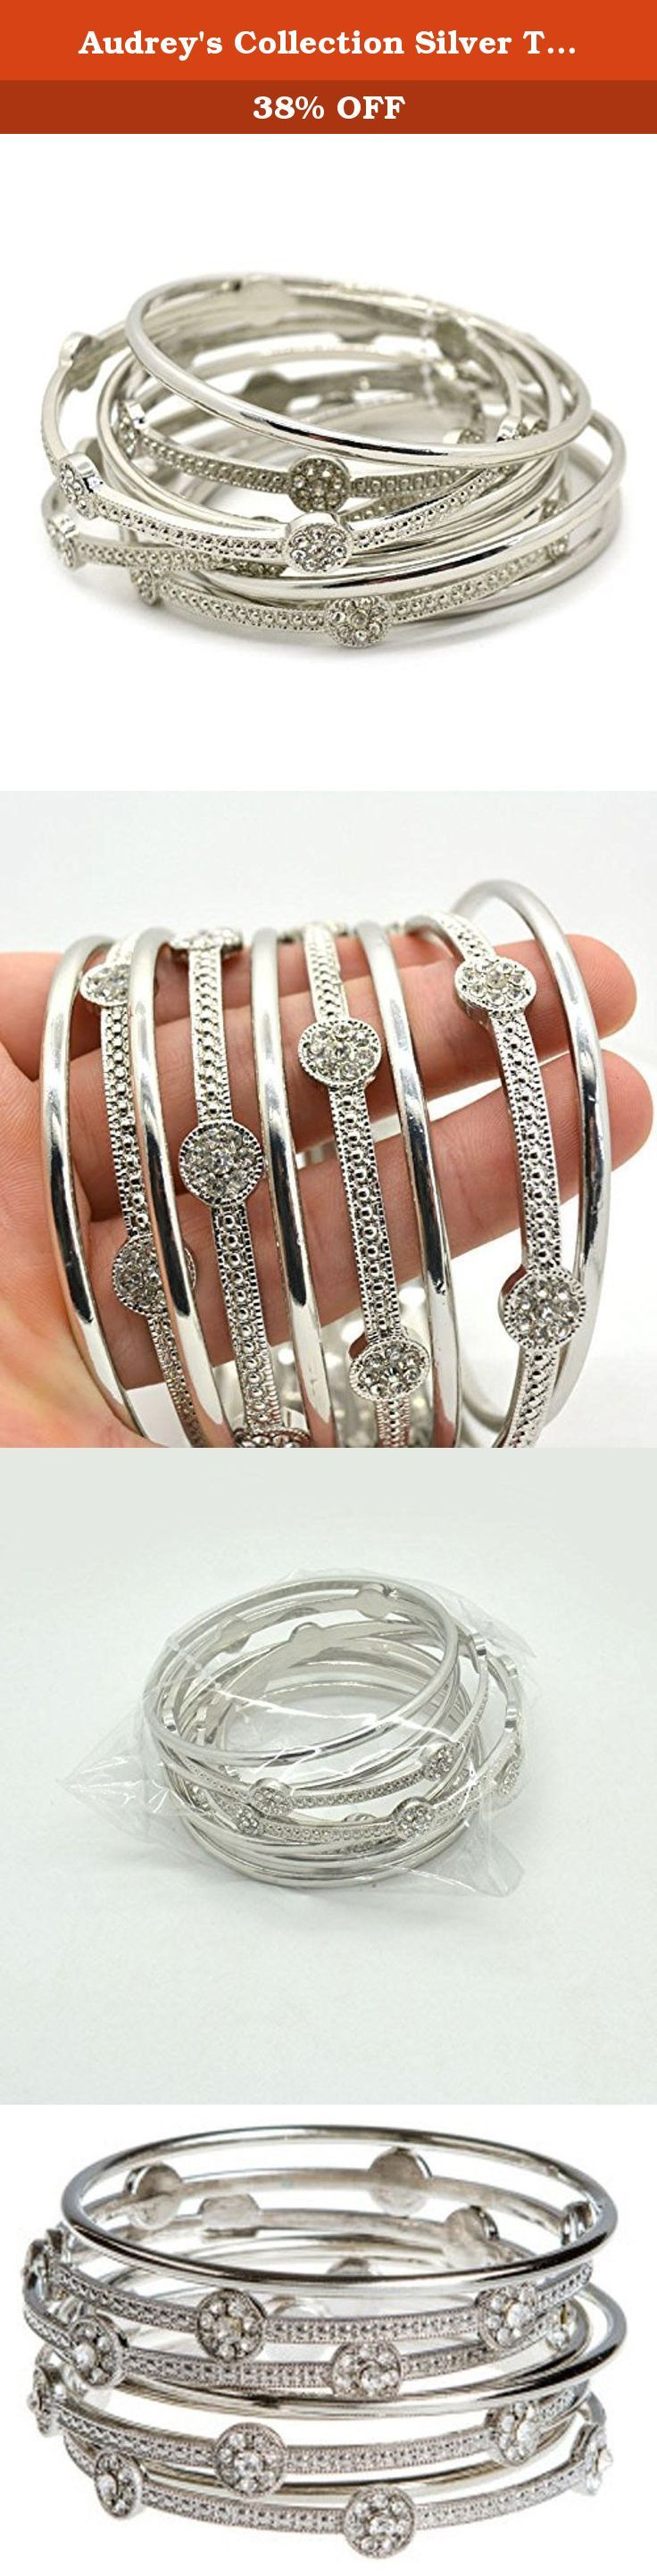 Audrey's Collection Silver Tone 9 Stack Sparkly Women Bangle Bracelets Plus Size 3 Inches in Diameter. * Wear all bangles together for an on trend stacked look or separate the bracelets as you wish. * Four of these elegant cyrstal bracelets are embellished with clear crystal pavé for a hint of sparkle. * Plus Size Bracelets 3 Inch in Diameter. * This is a beautiful piece of jewelry to own. The crystals are very sparkly and eye catching. * Treat yourself or someone special to these…